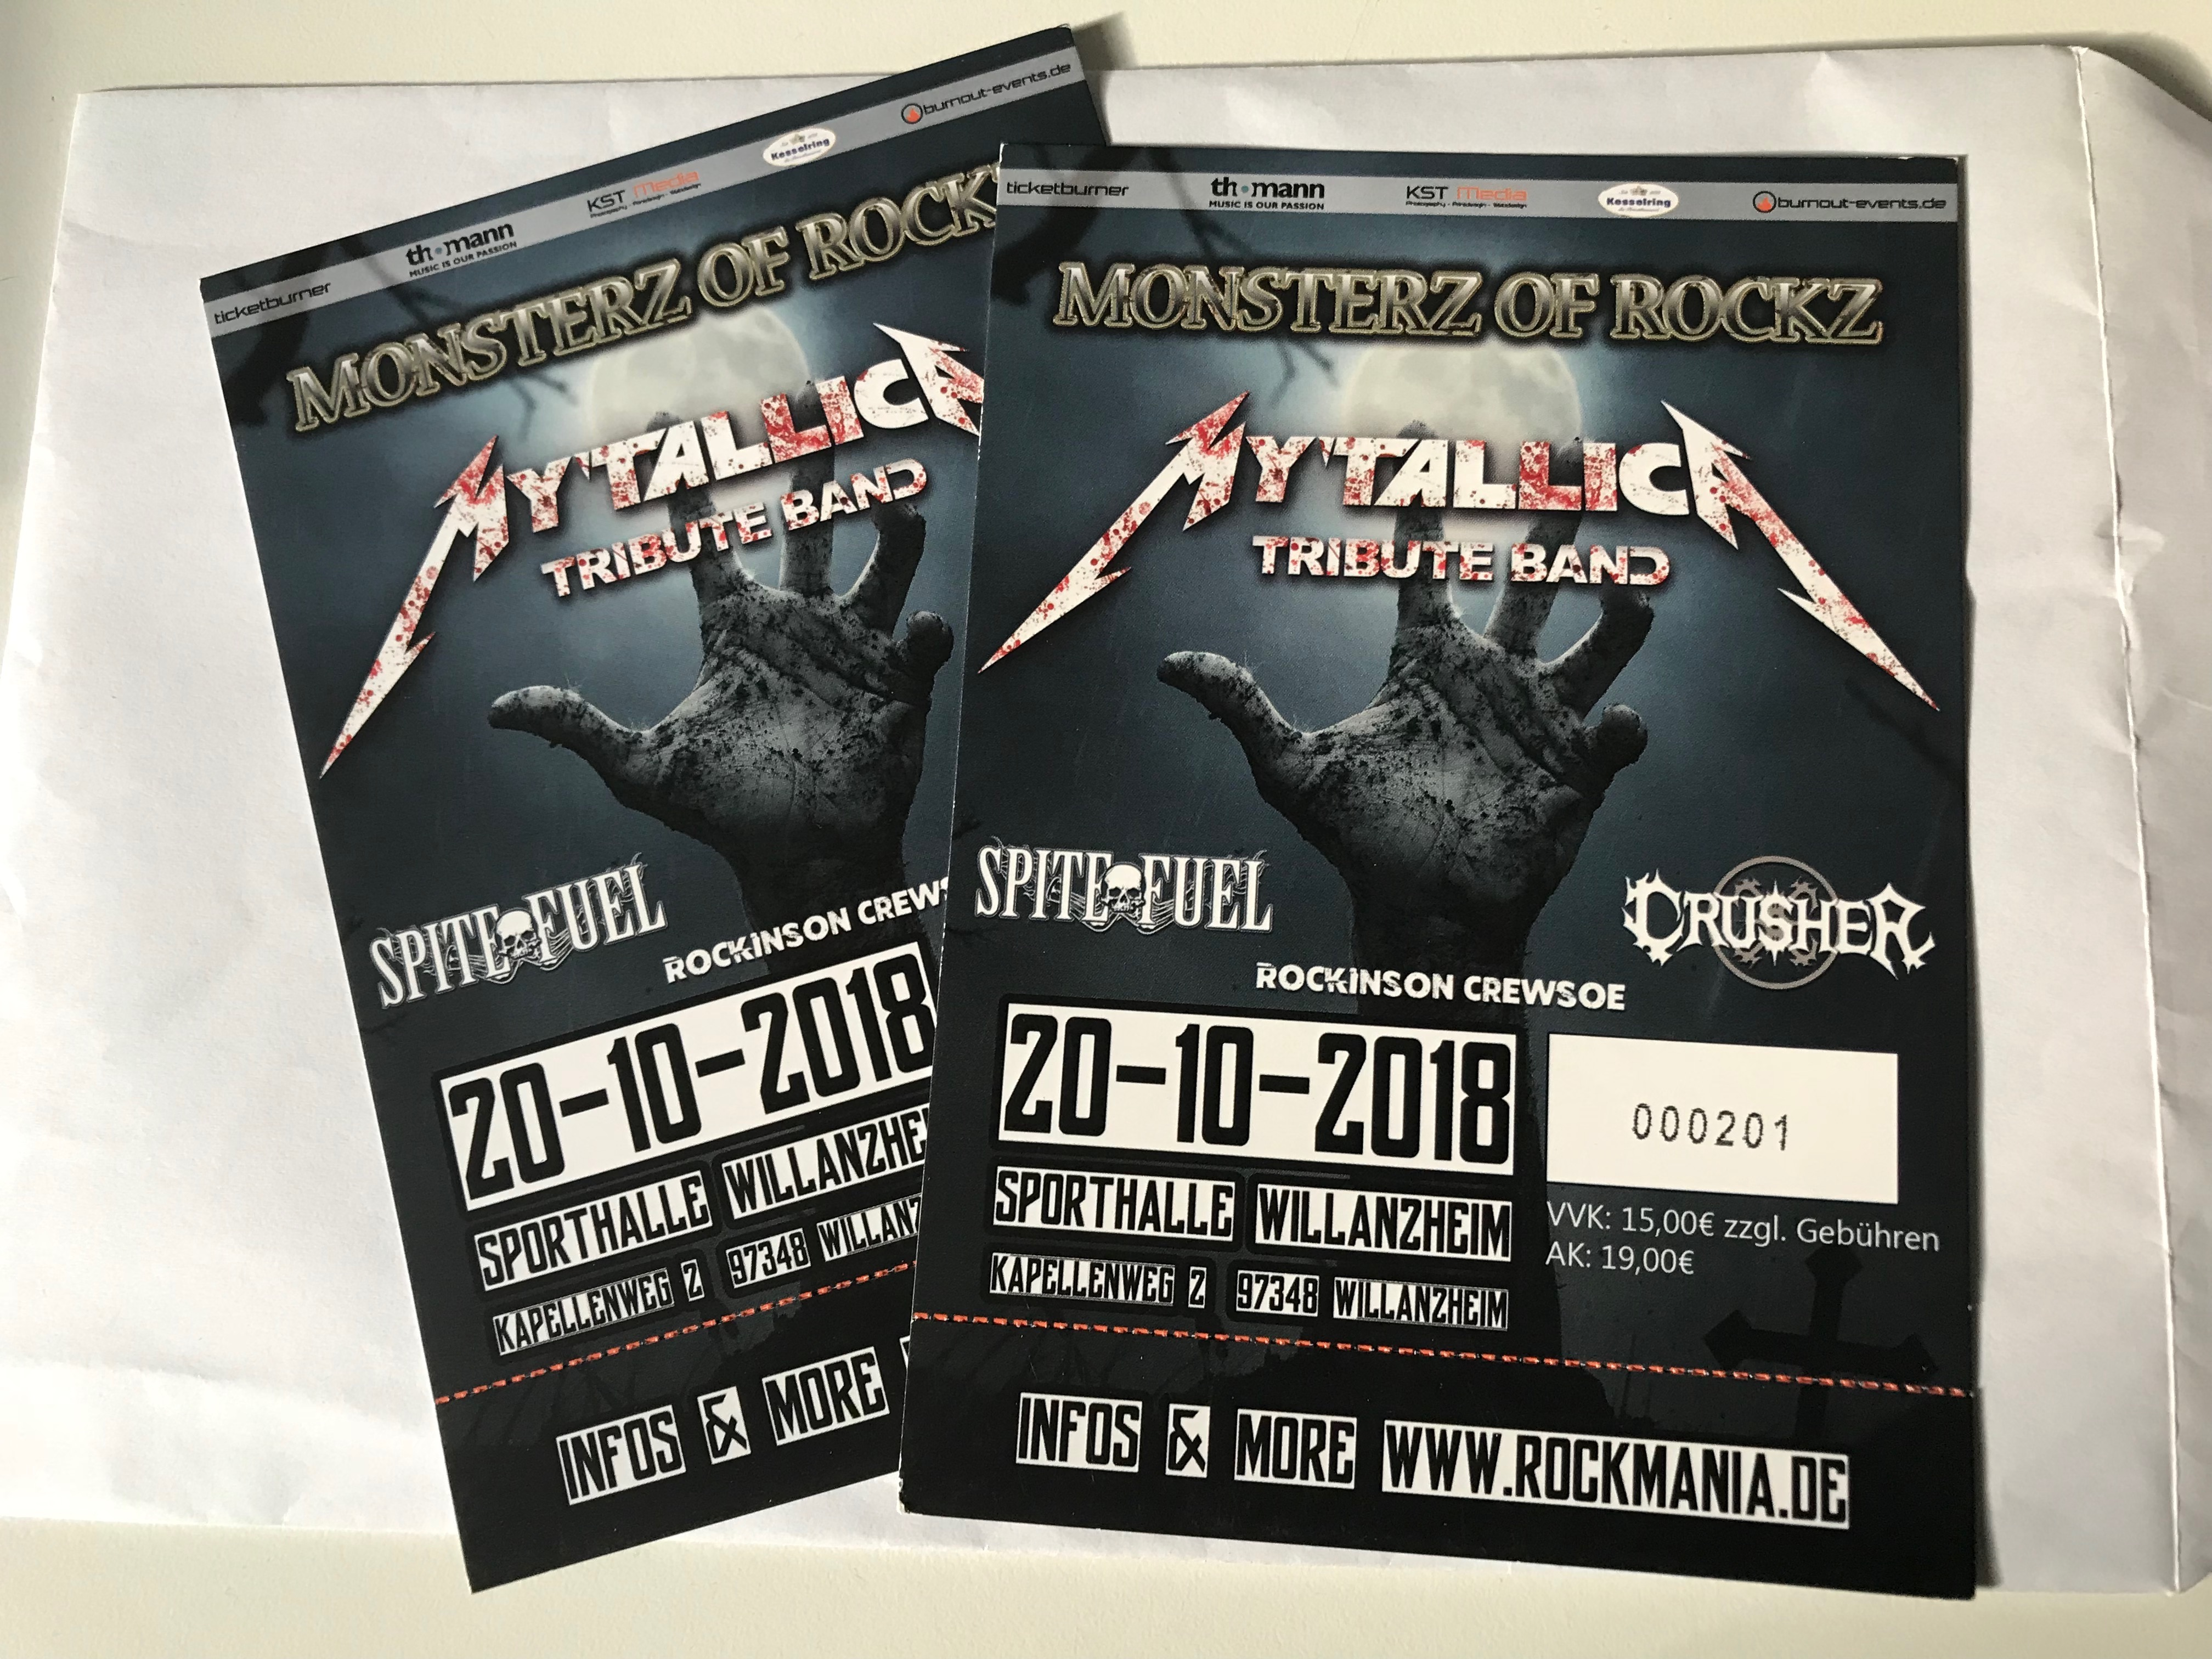 mytallica-willanzheim-2018-live-monsterz-of-rockz-spitefuel-crusher-flyer-sporthalle